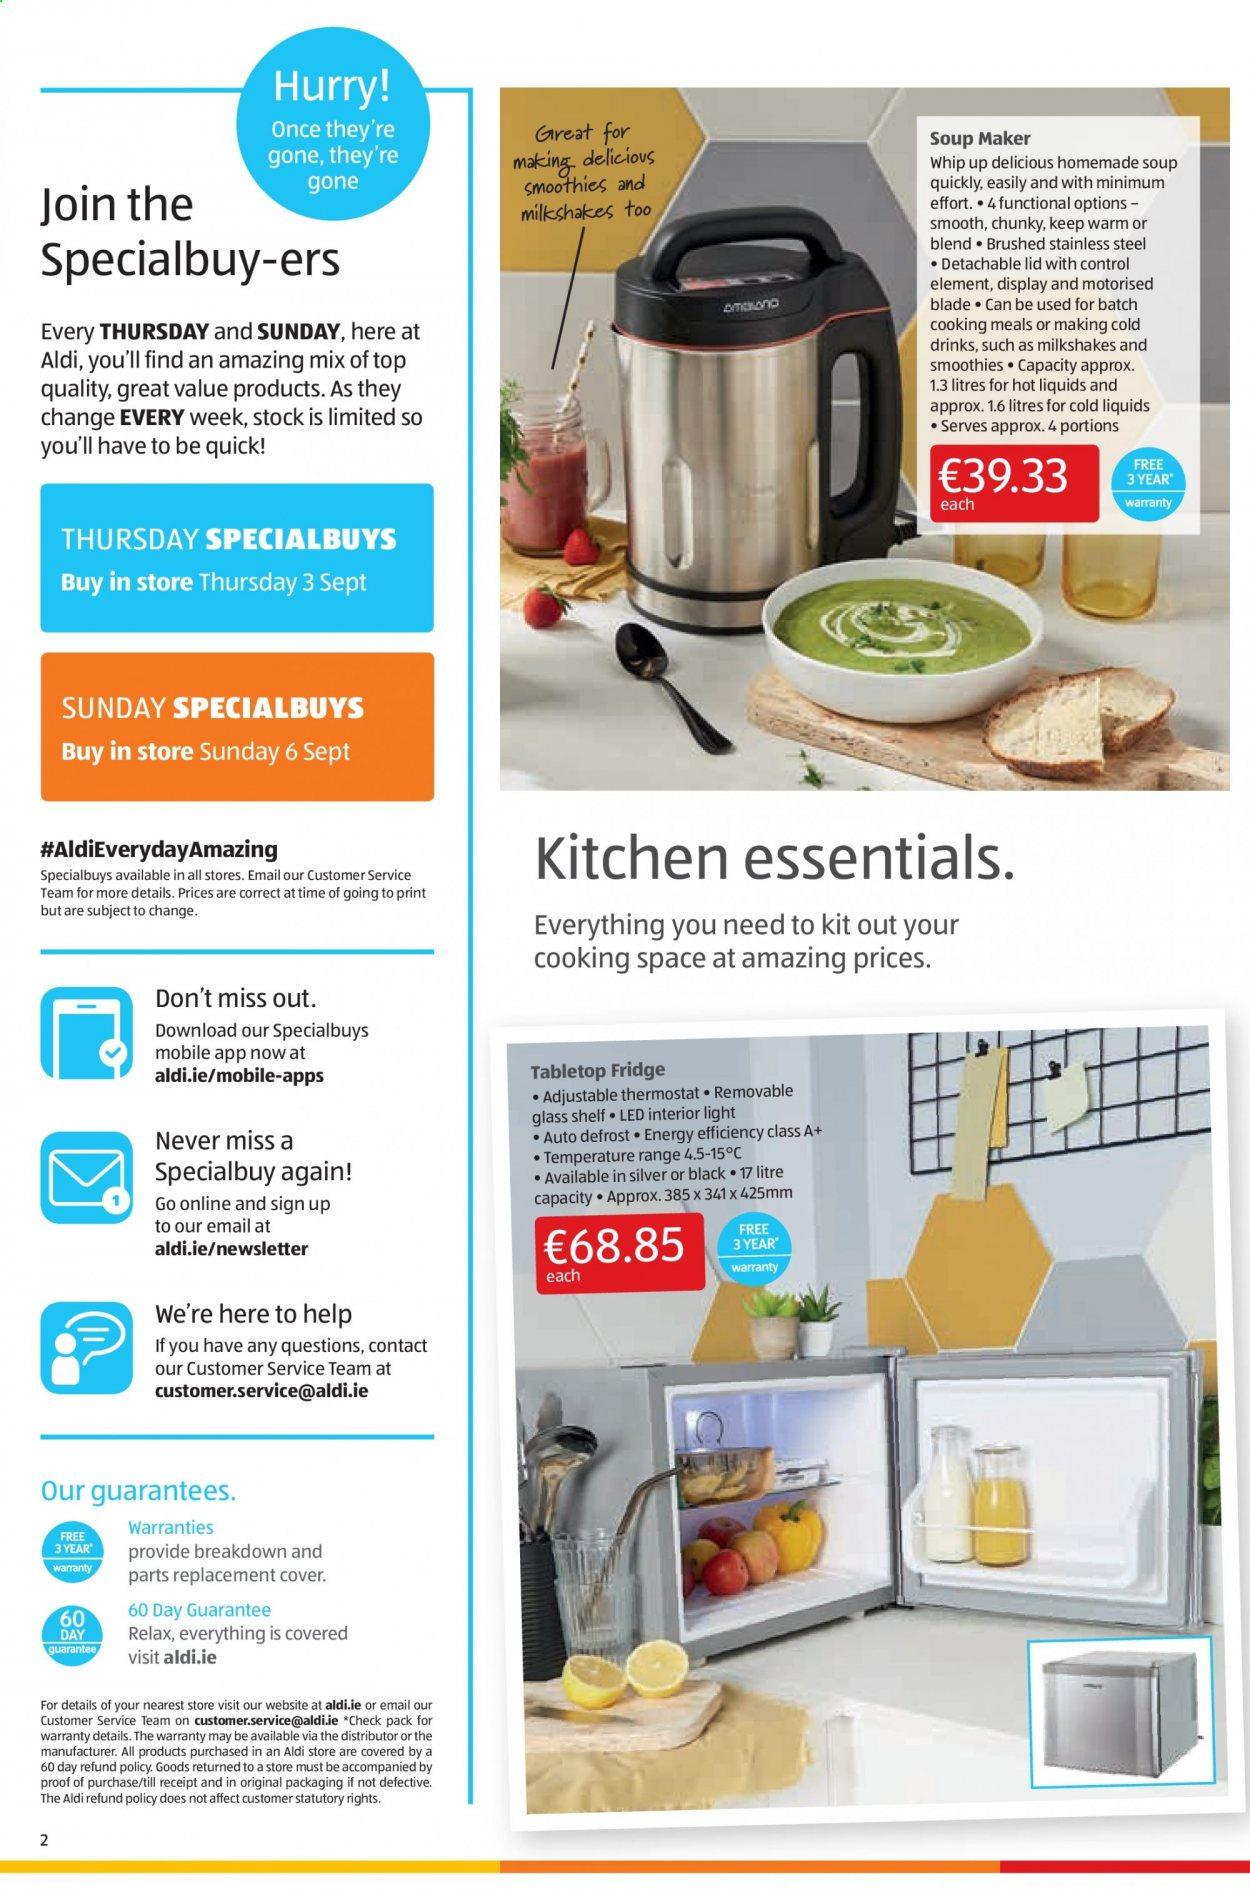 Aldi offer  - 3.9.2020 - 6.9.2020 - Sales products - cover, glass, lid, refrigerator, shelf, stainless, kitchen, quick, soup, drink, control, blade, stainless steel, fridge, essentials, led. Page 2.